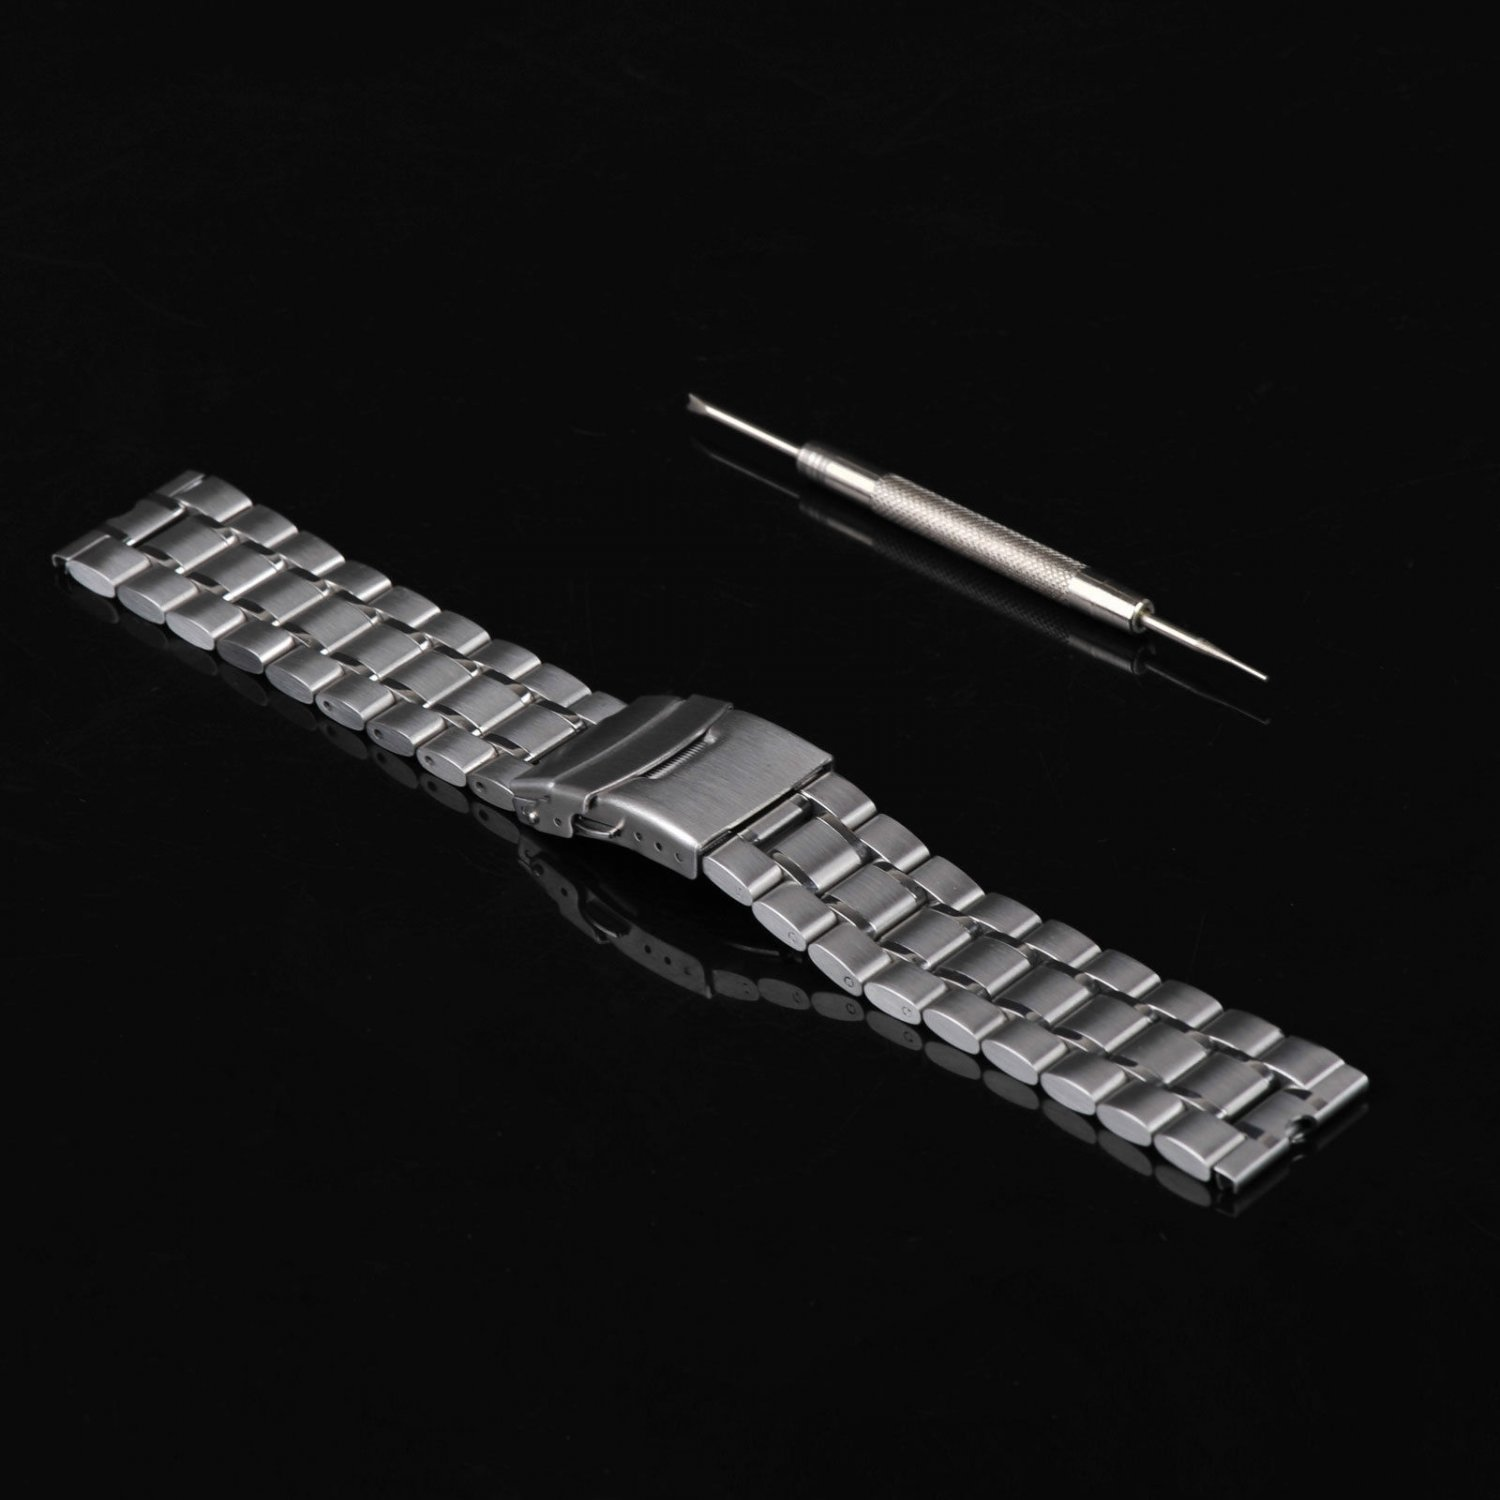 New Stainless Steel Metal Watchband for Motorola Moto 360 Smartwatch Tool